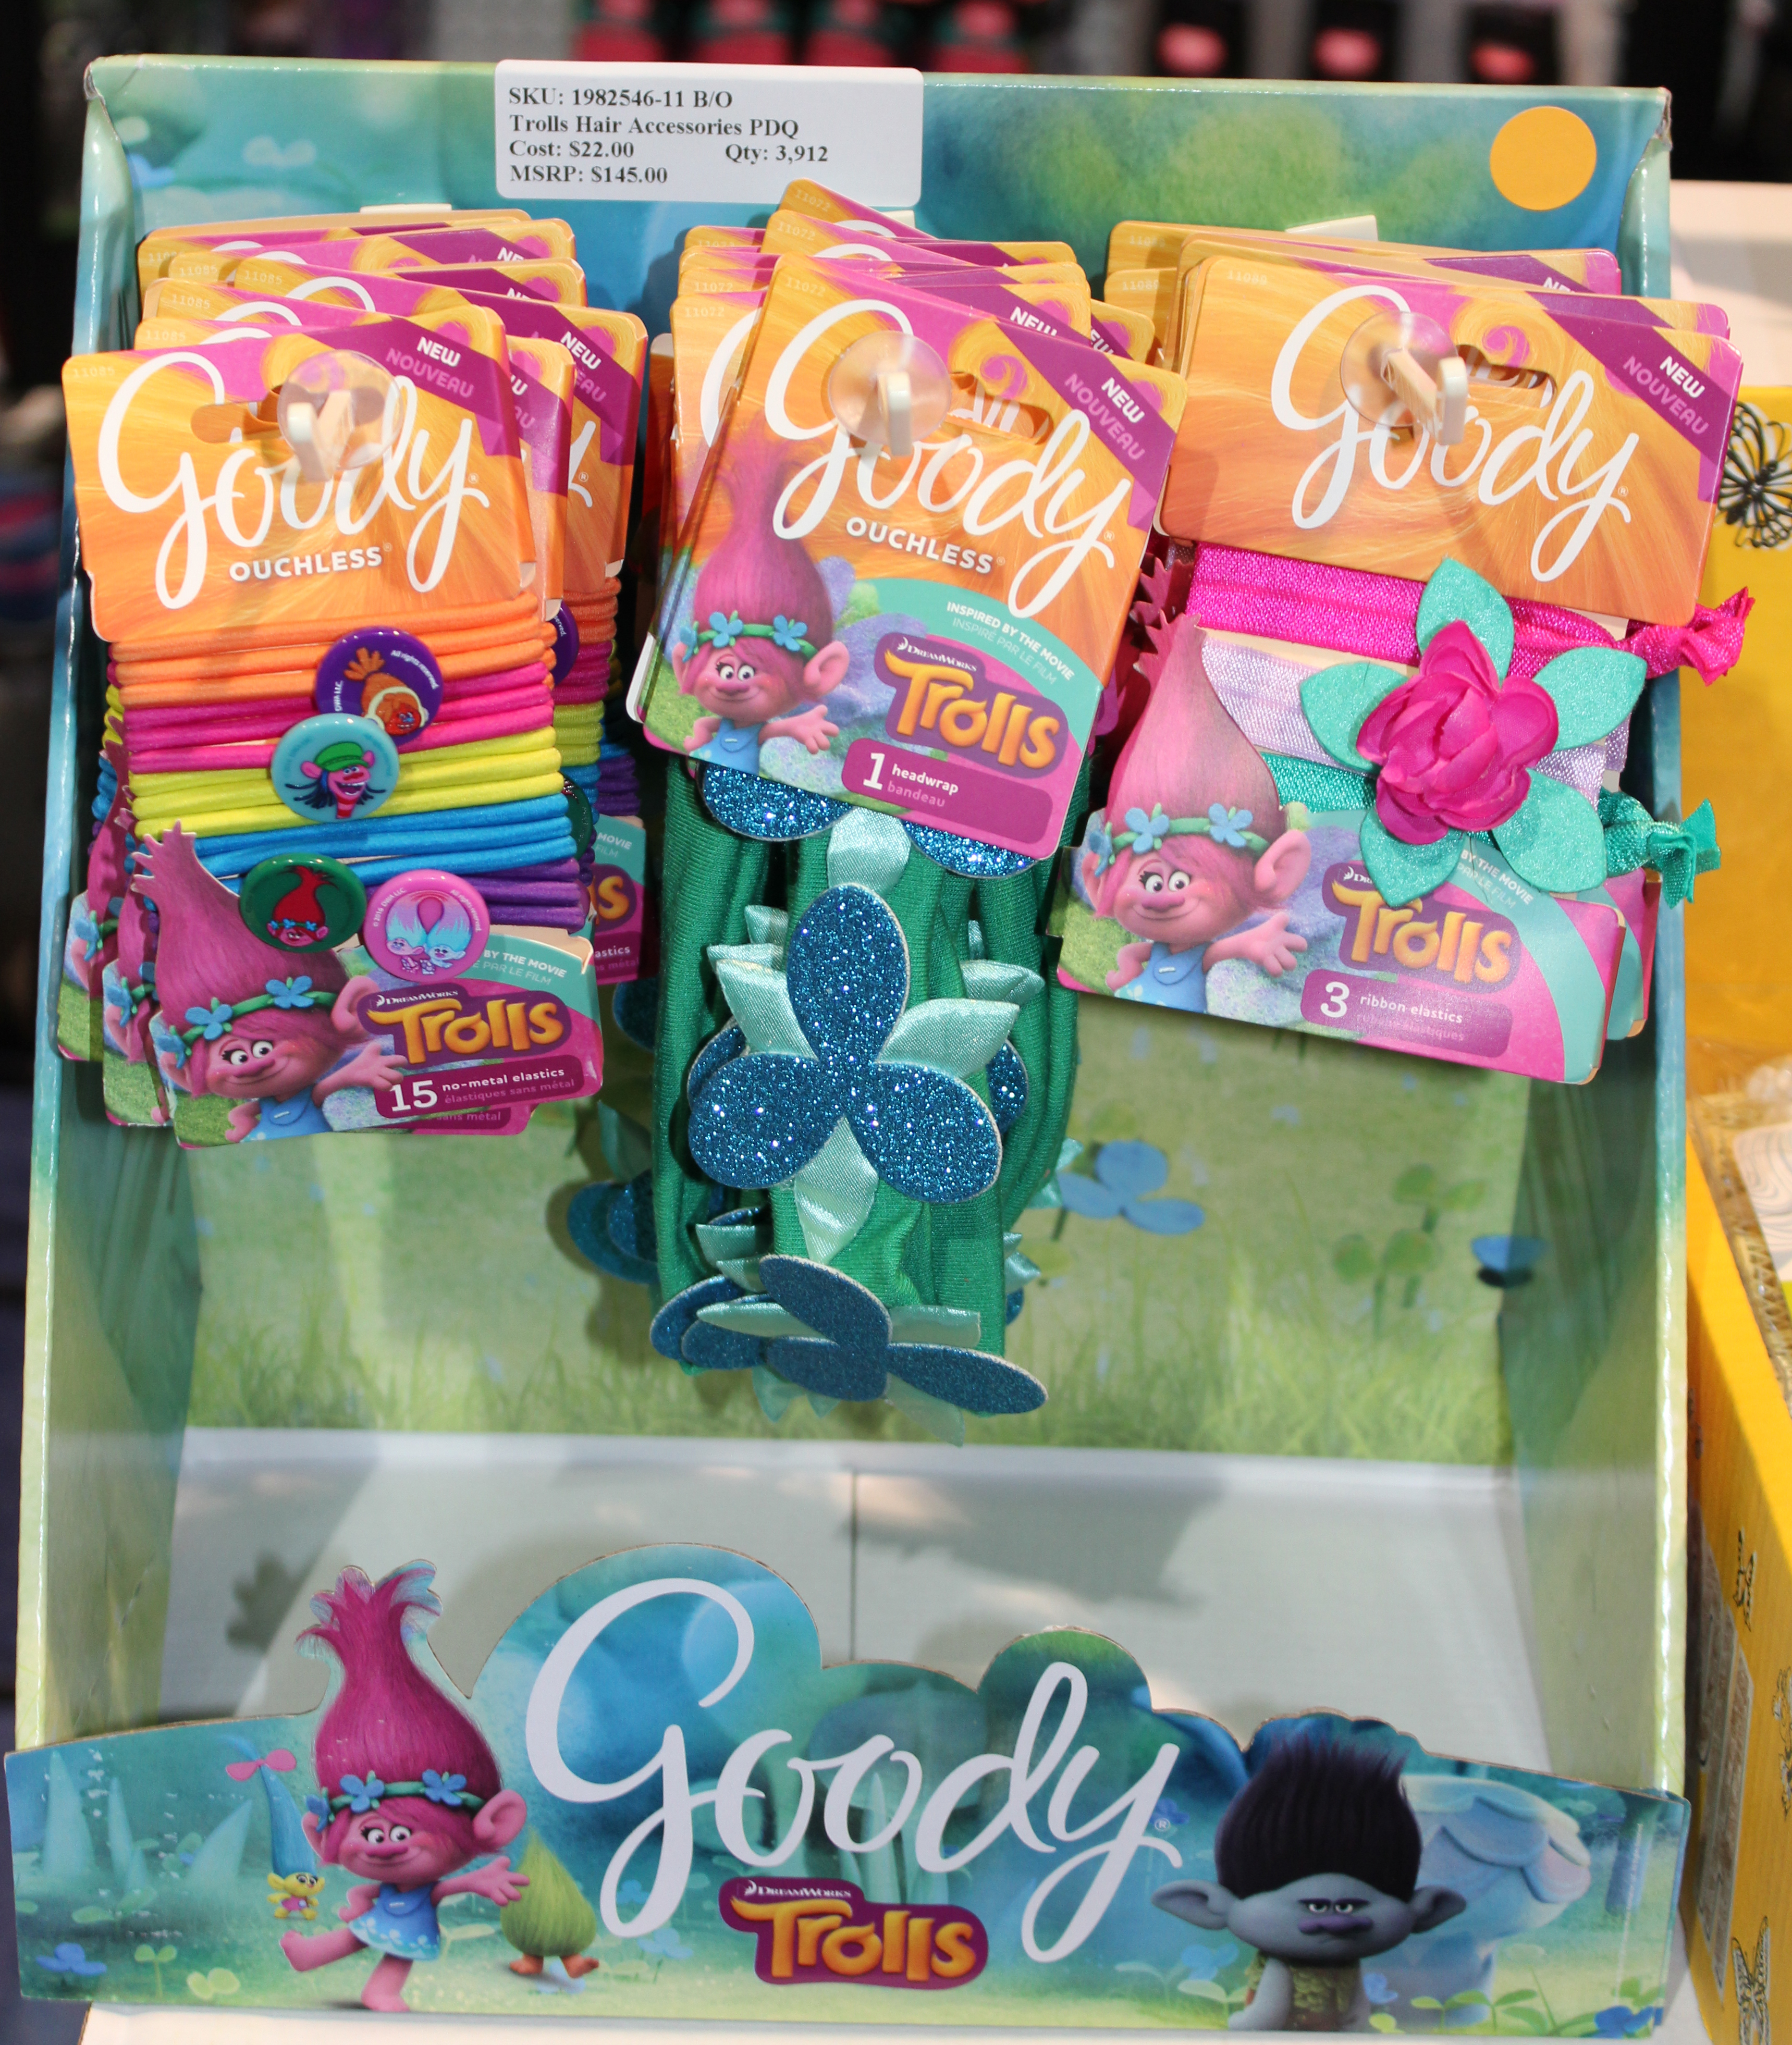 Goody Trolls 22 Unit PDQ Counter Top Display.